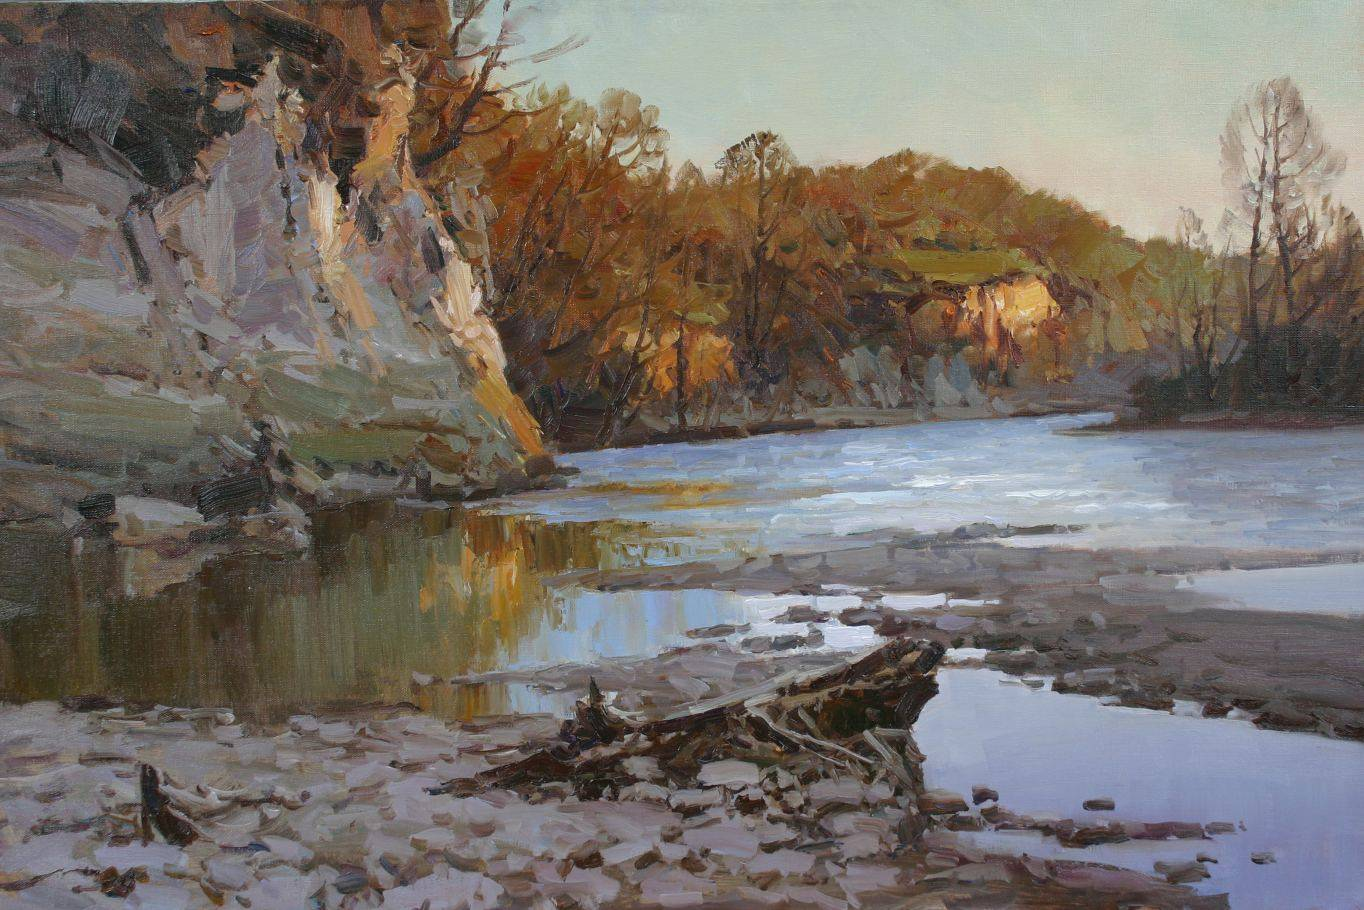 Spring, the river Zelenchuk. Image of your art work hanging on the wall